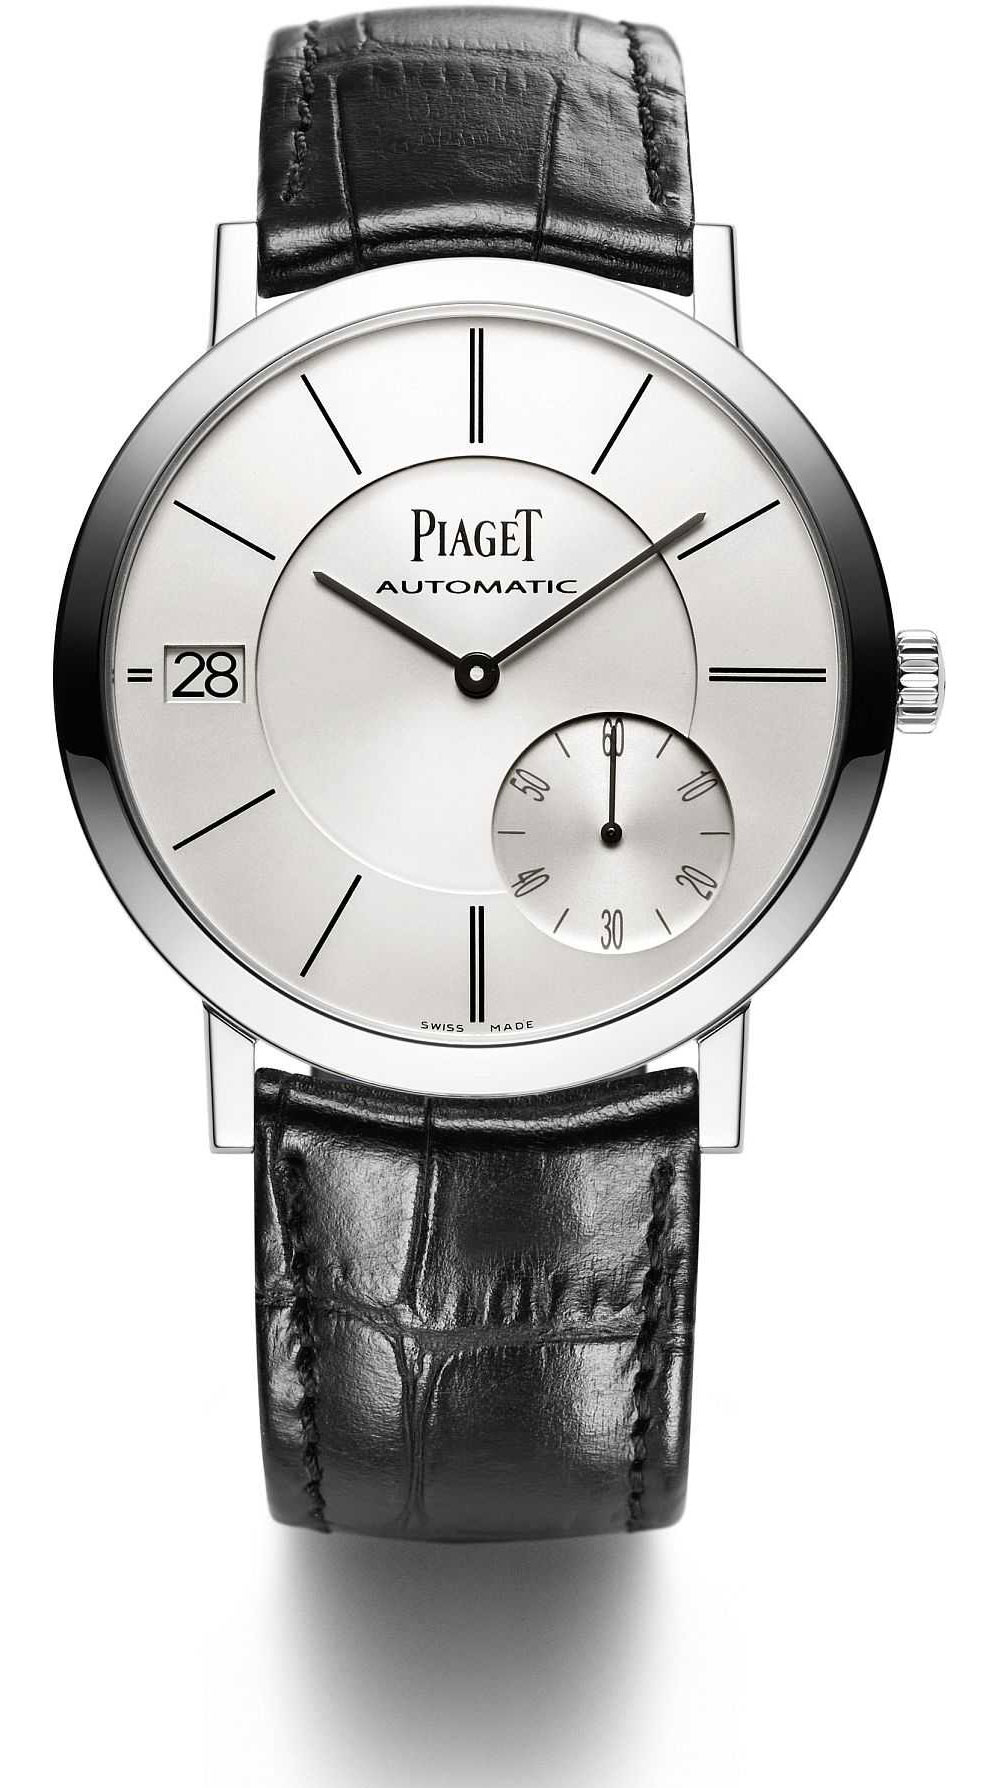 2013 Piaget Altiplano Collection  Elegant Ultrathin. Indented Bands. Pippa Bands. Gun Bands. E Ring Bands. Seranite Bands. Dual Bands. Blaze Orange Bands. Homemade Metal Bands